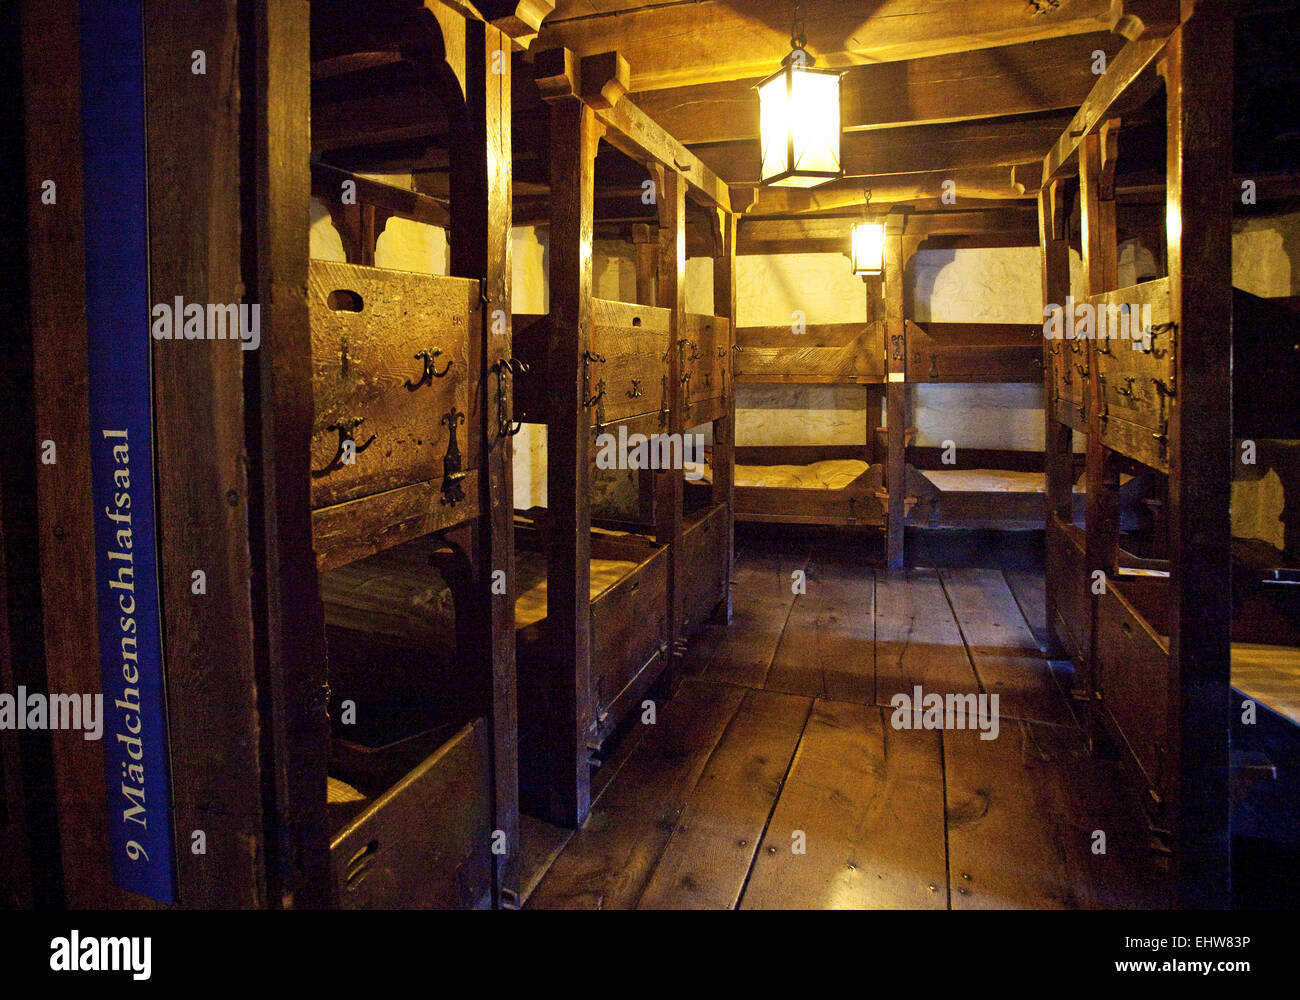 International Youth Hostel Museum in Altena - Stock Image